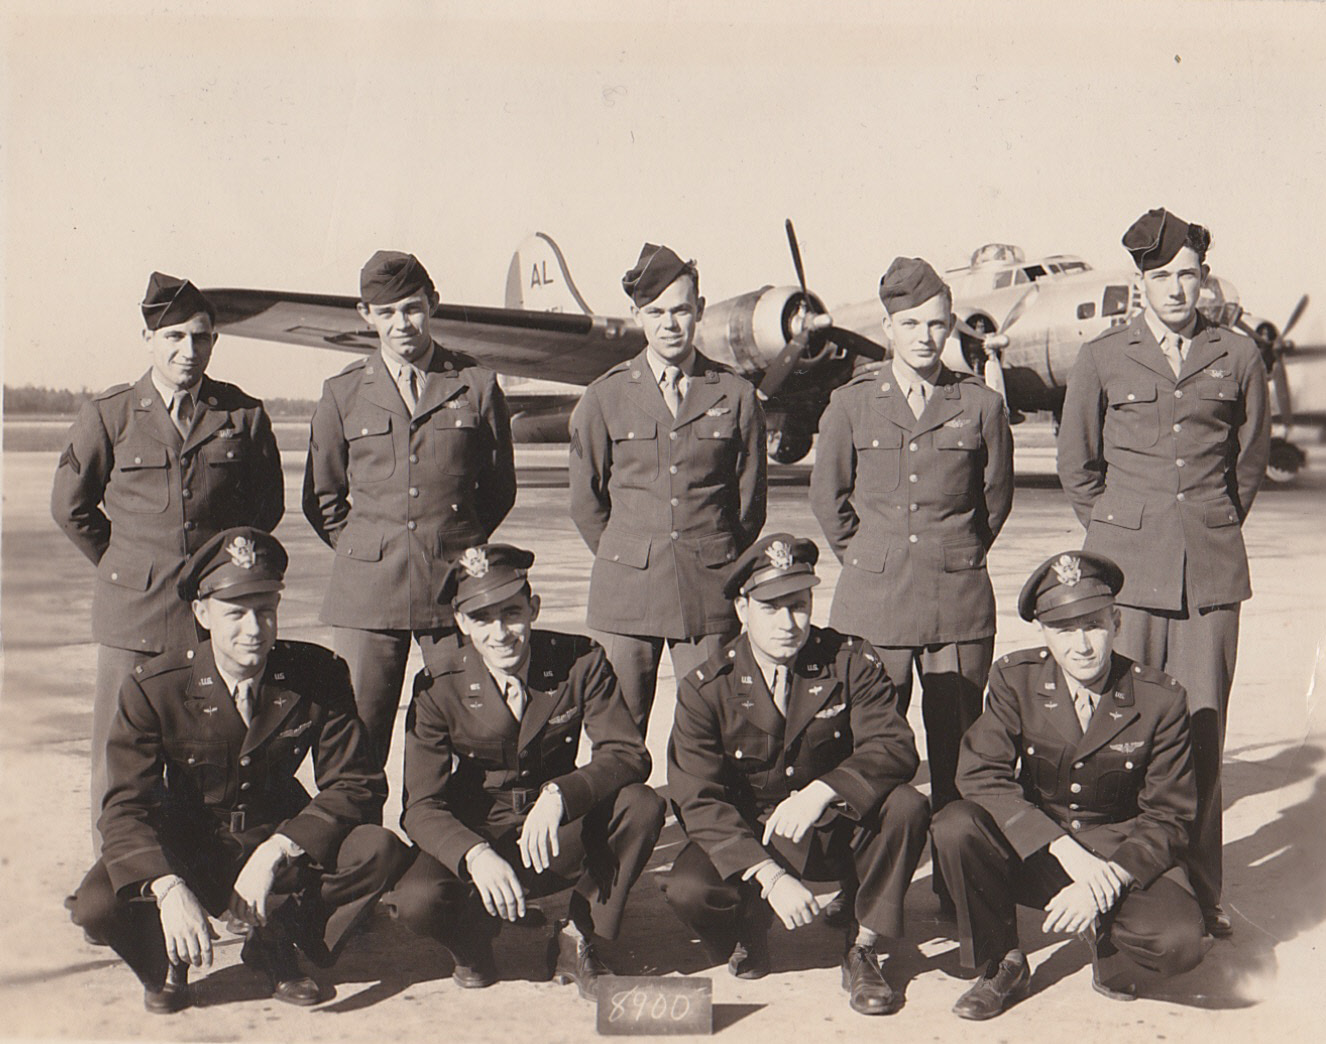 My grandfather, Lt. William A. Cannon, is at the bottom left.